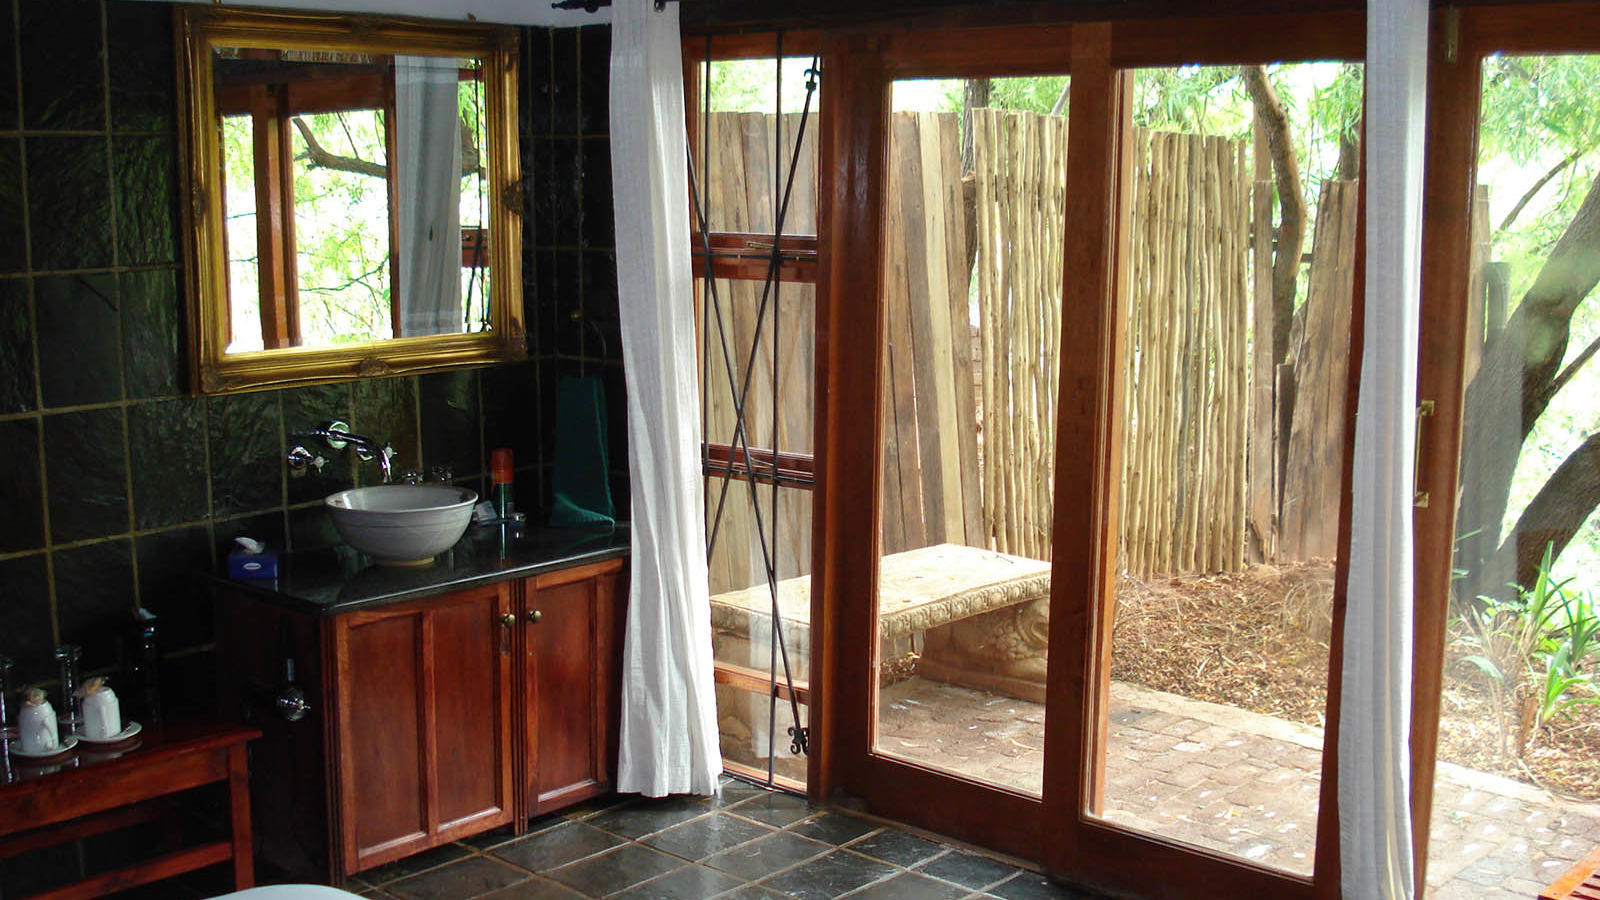 Lakeside Bathroom at Kedar Heritage Lodge by Warwick